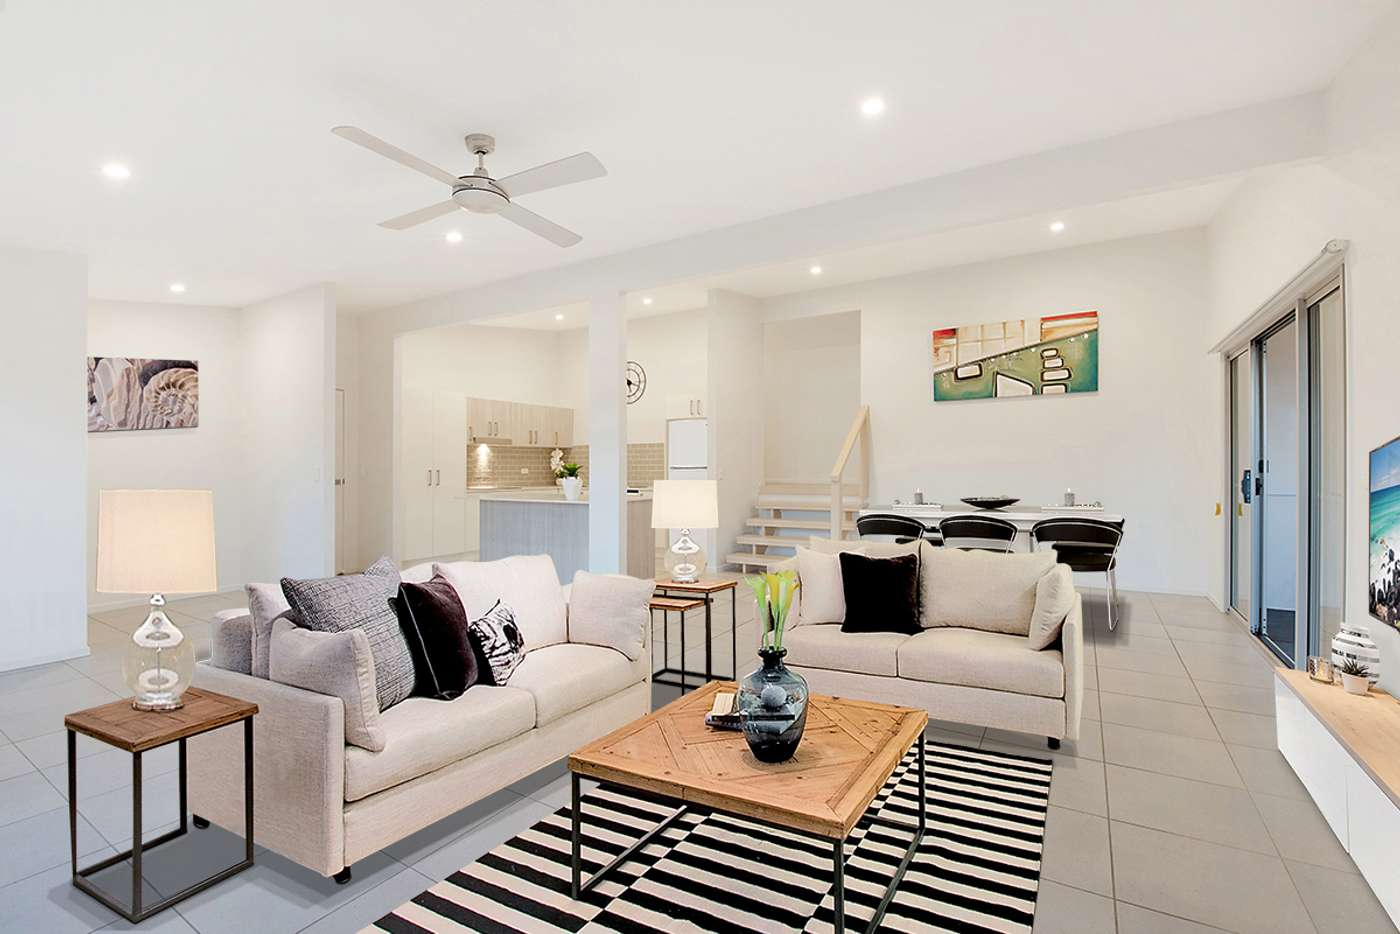 Main view of Homely house listing, 15 Tree View Crescent, Little Mountain QLD 4551